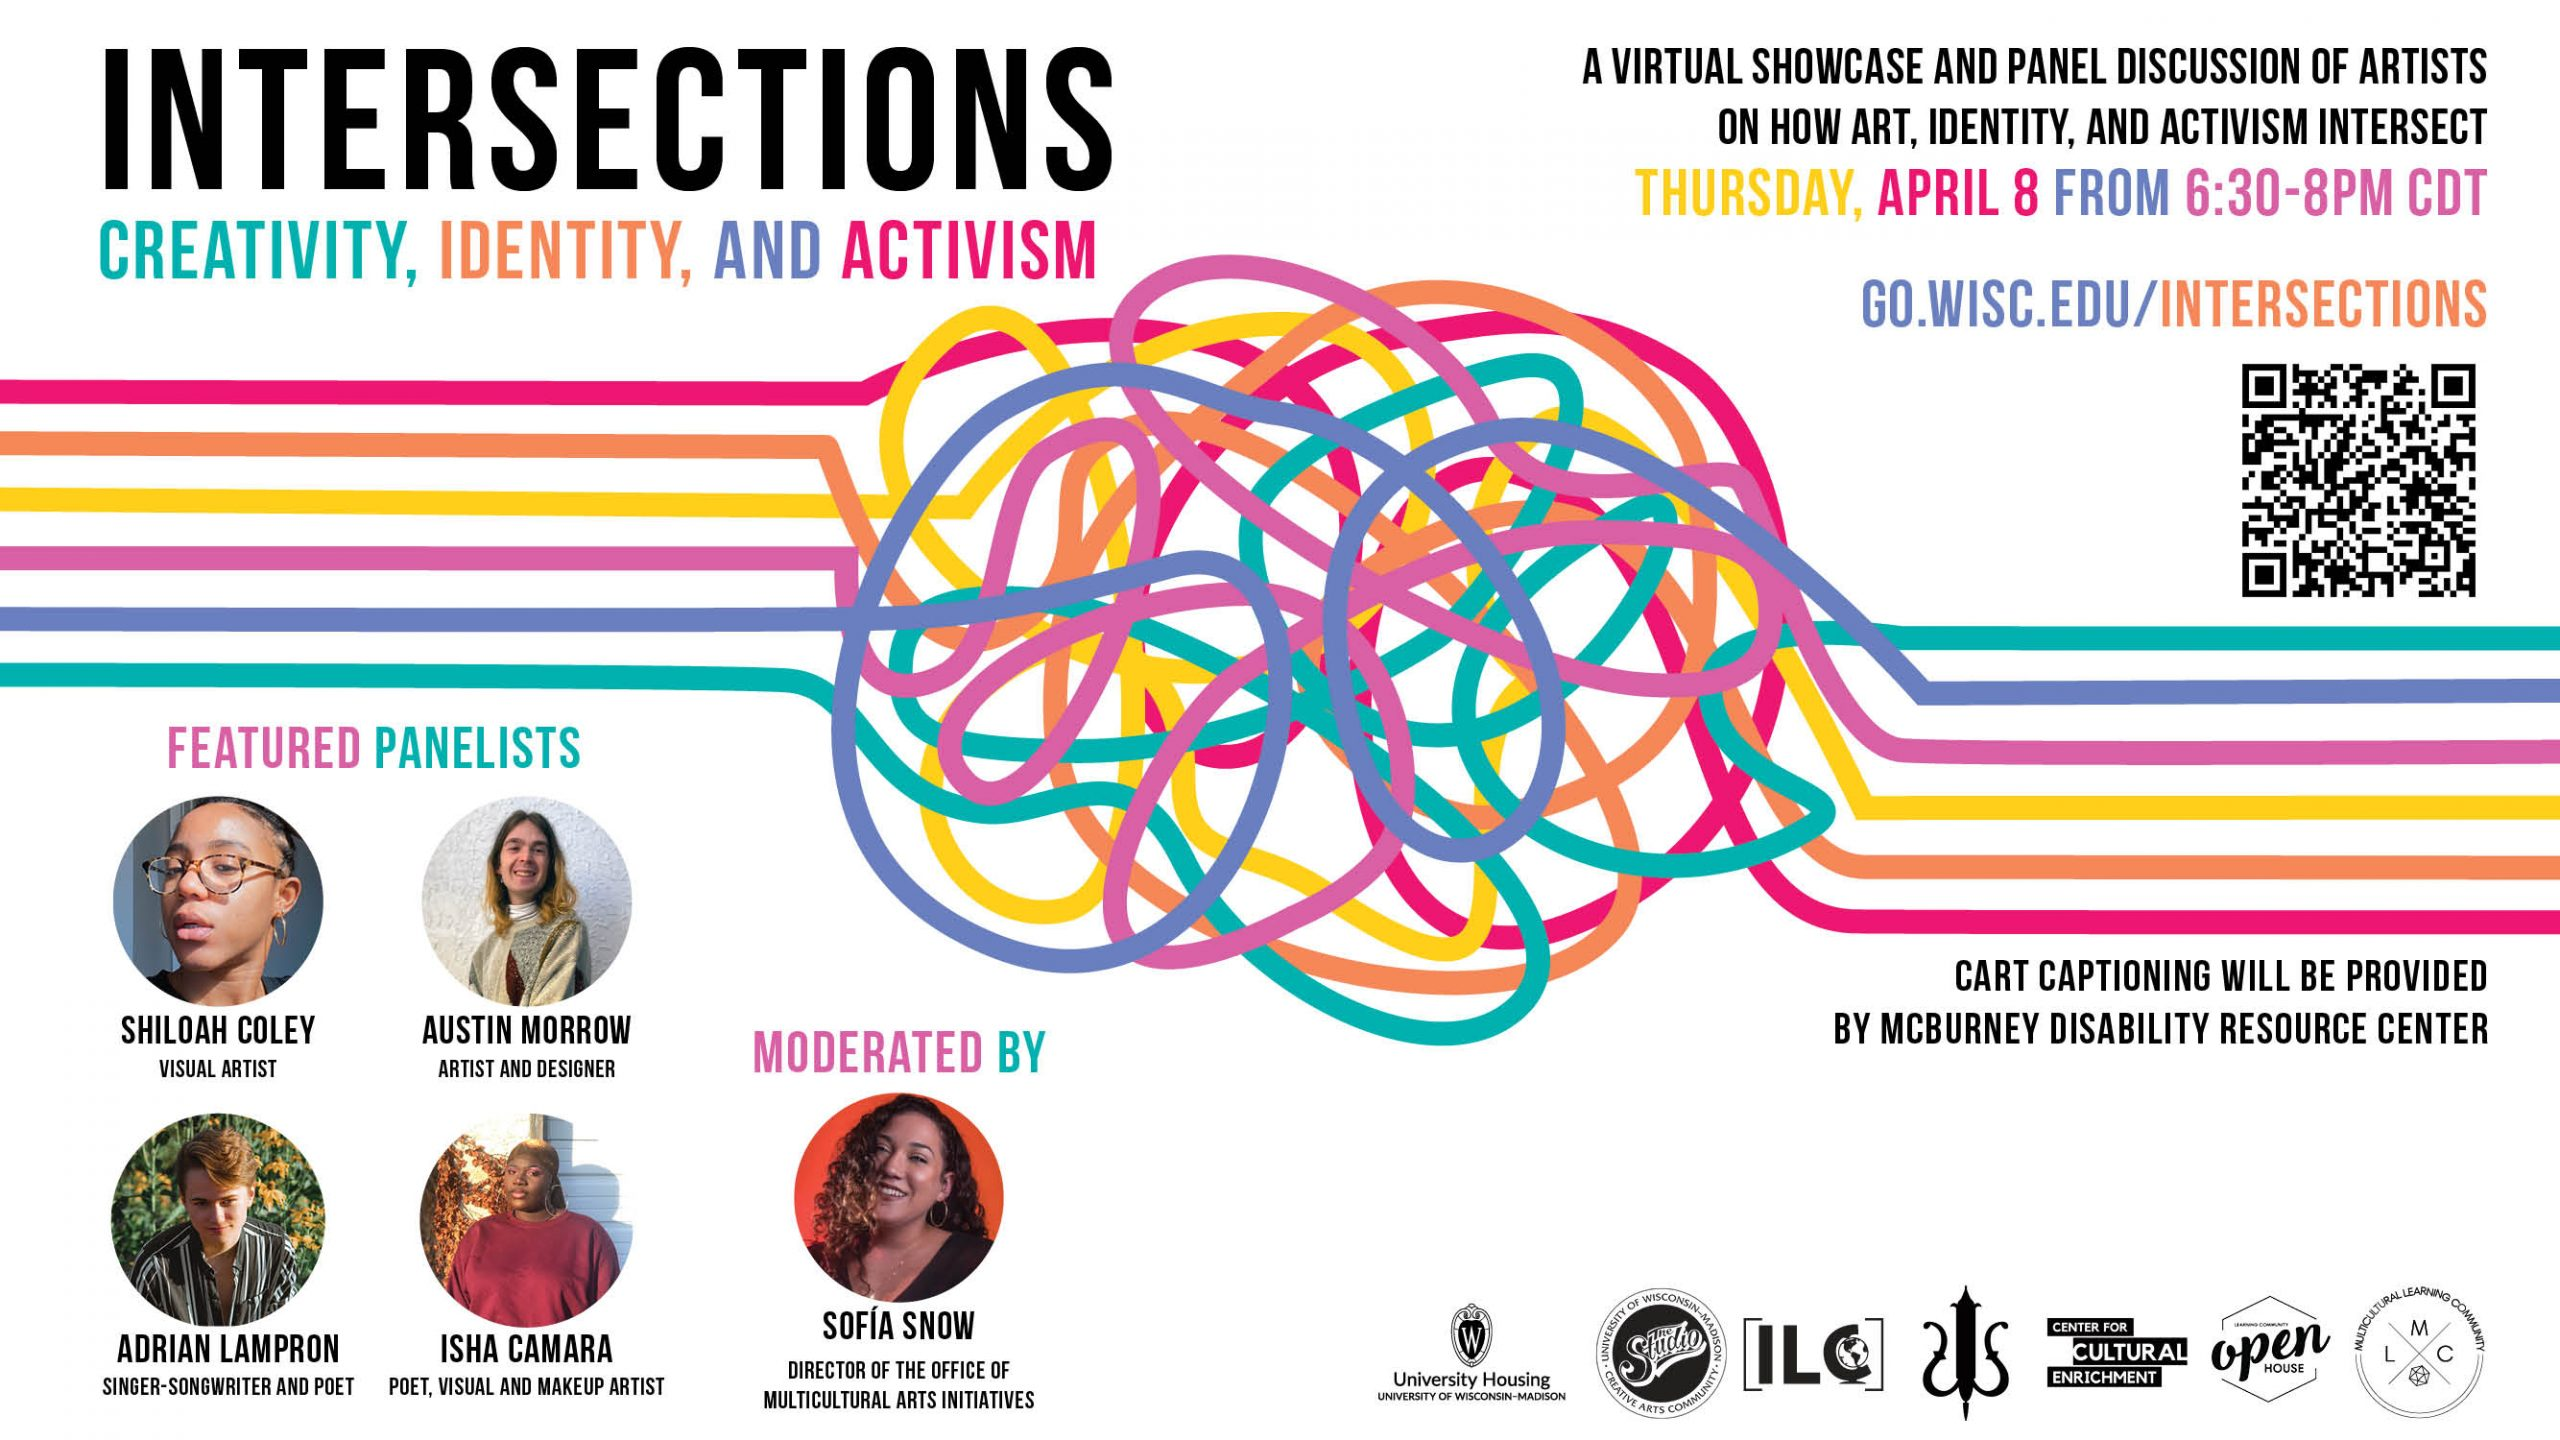 Intersections - Creativity, Identity, and Activism